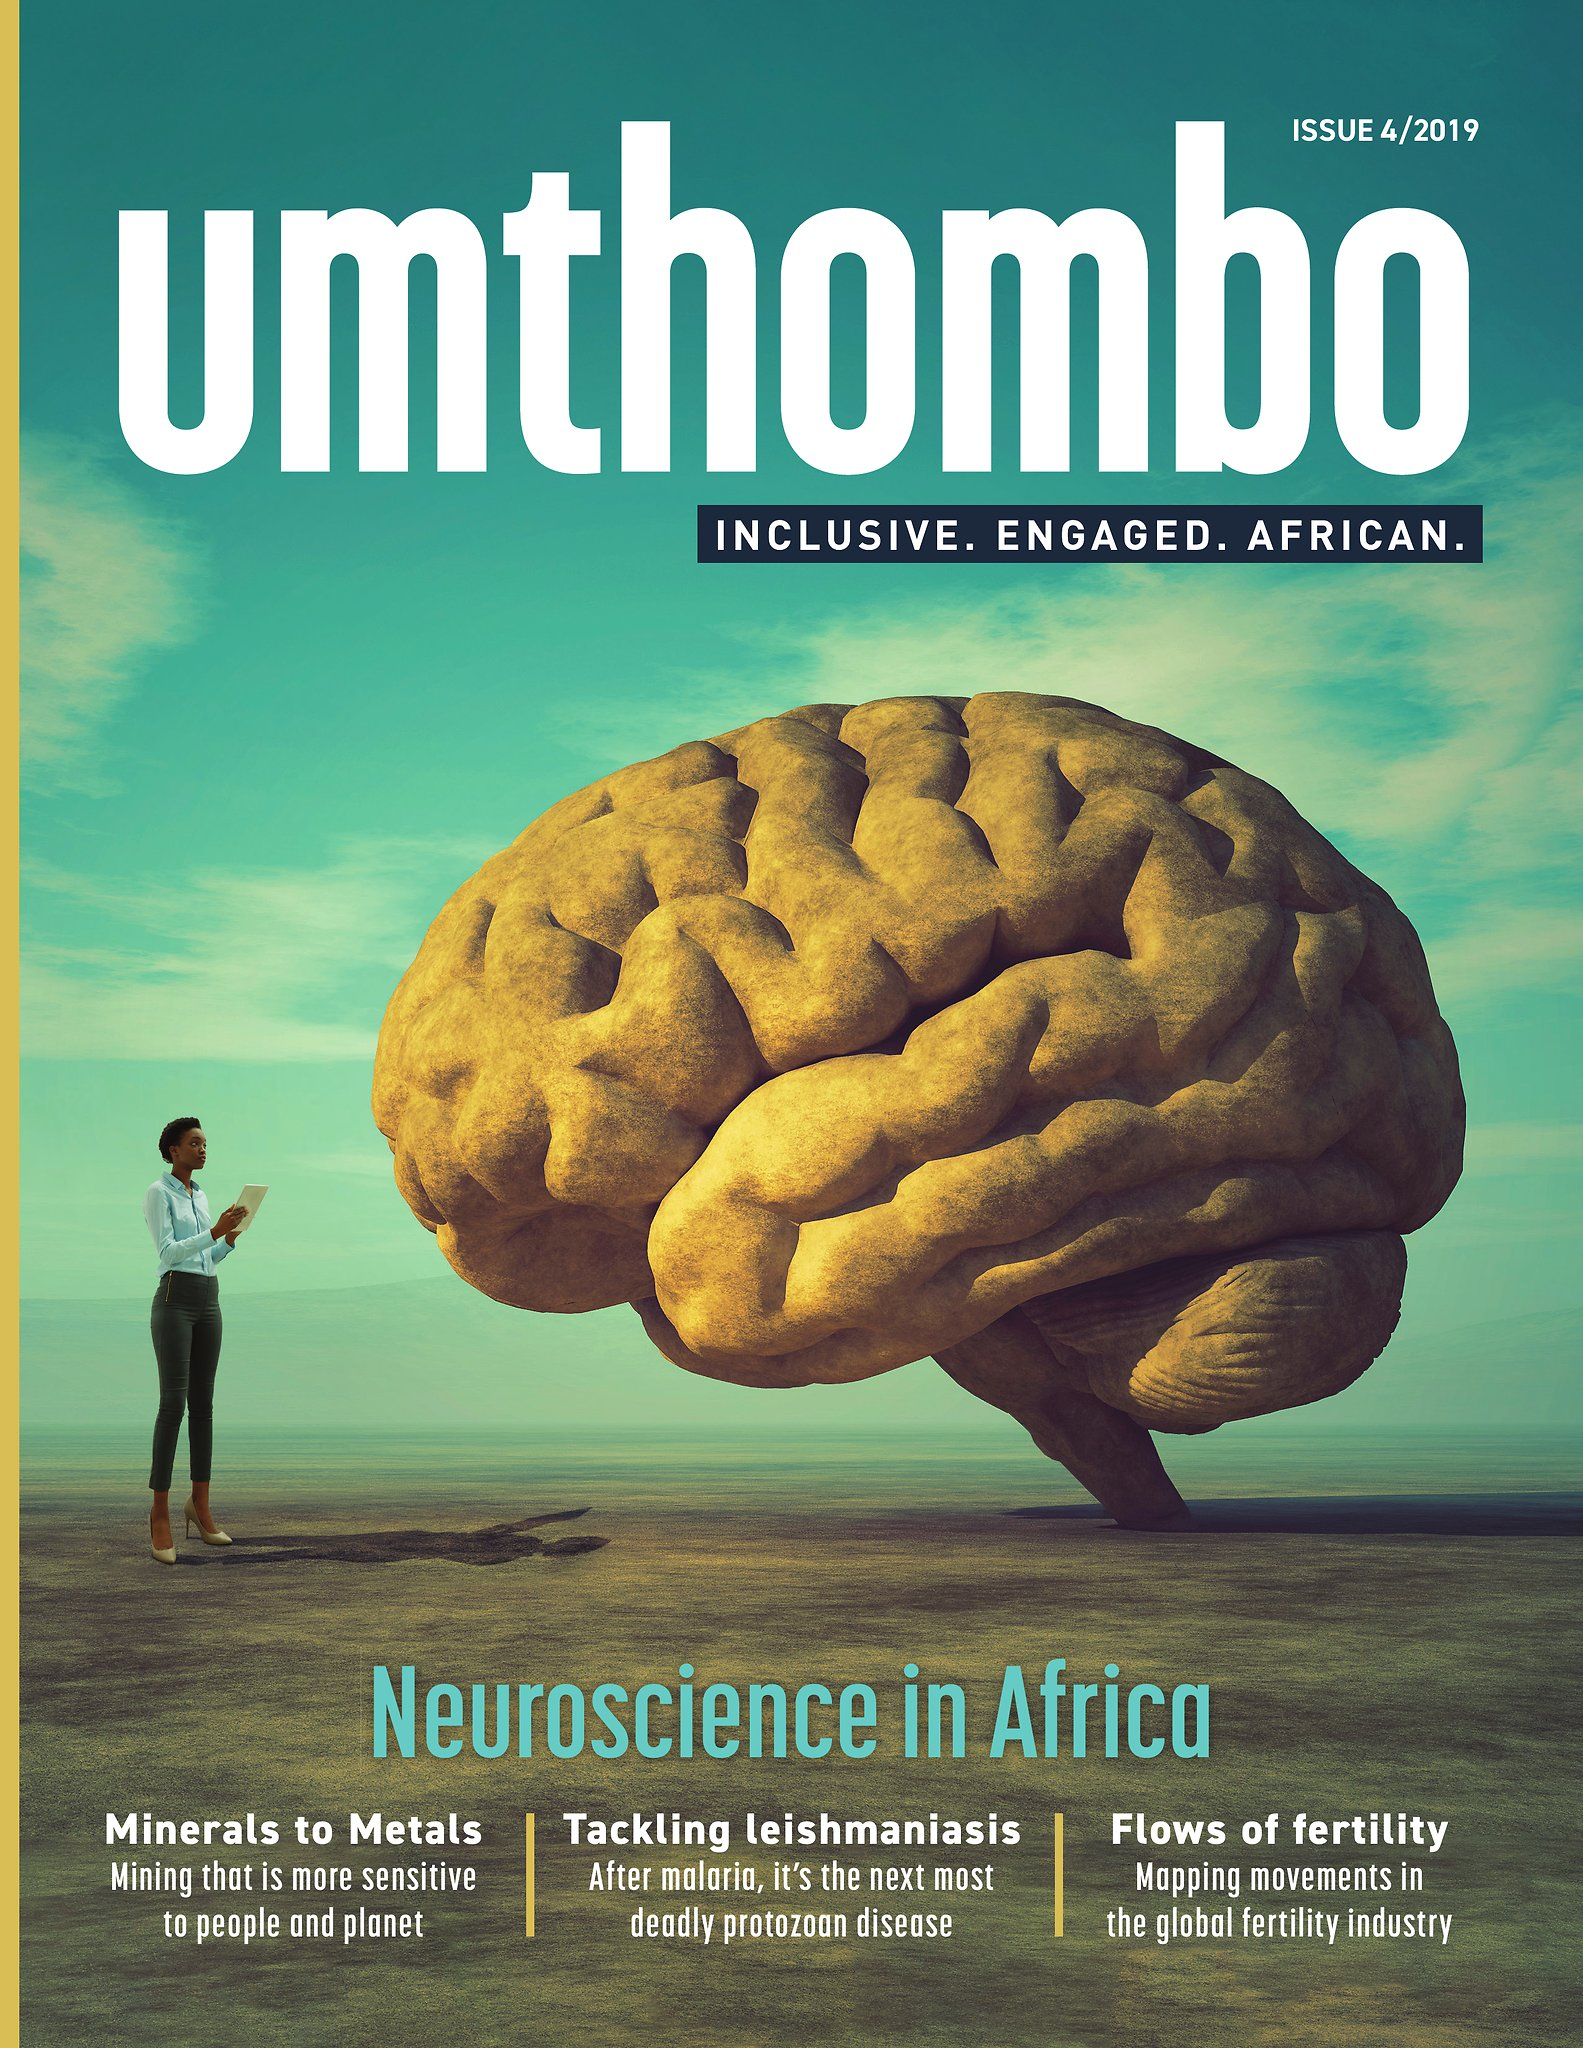 Umthombo Issue 4/2019 – Research magazine of the University of Cape Town